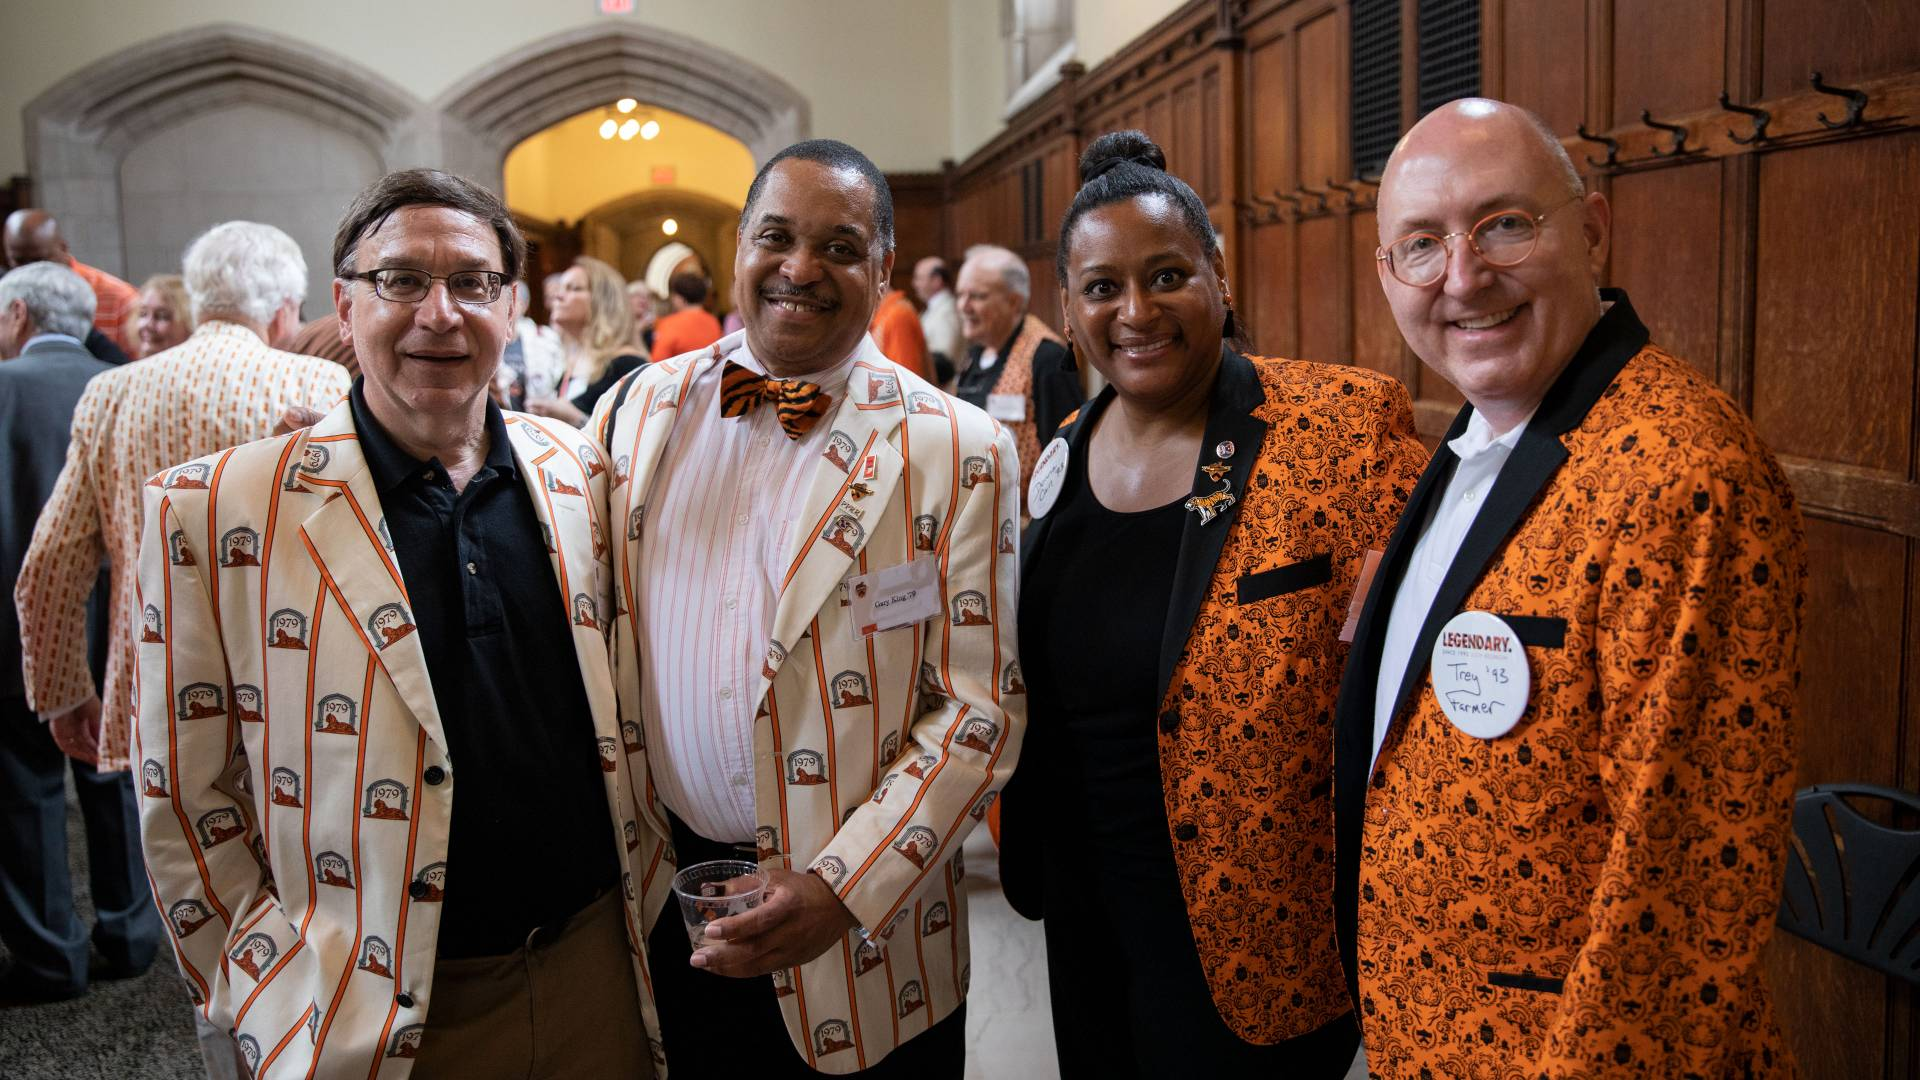 Rick Curtis '79, Gary King '79, Donna Cain '93, Trey Farmer '93